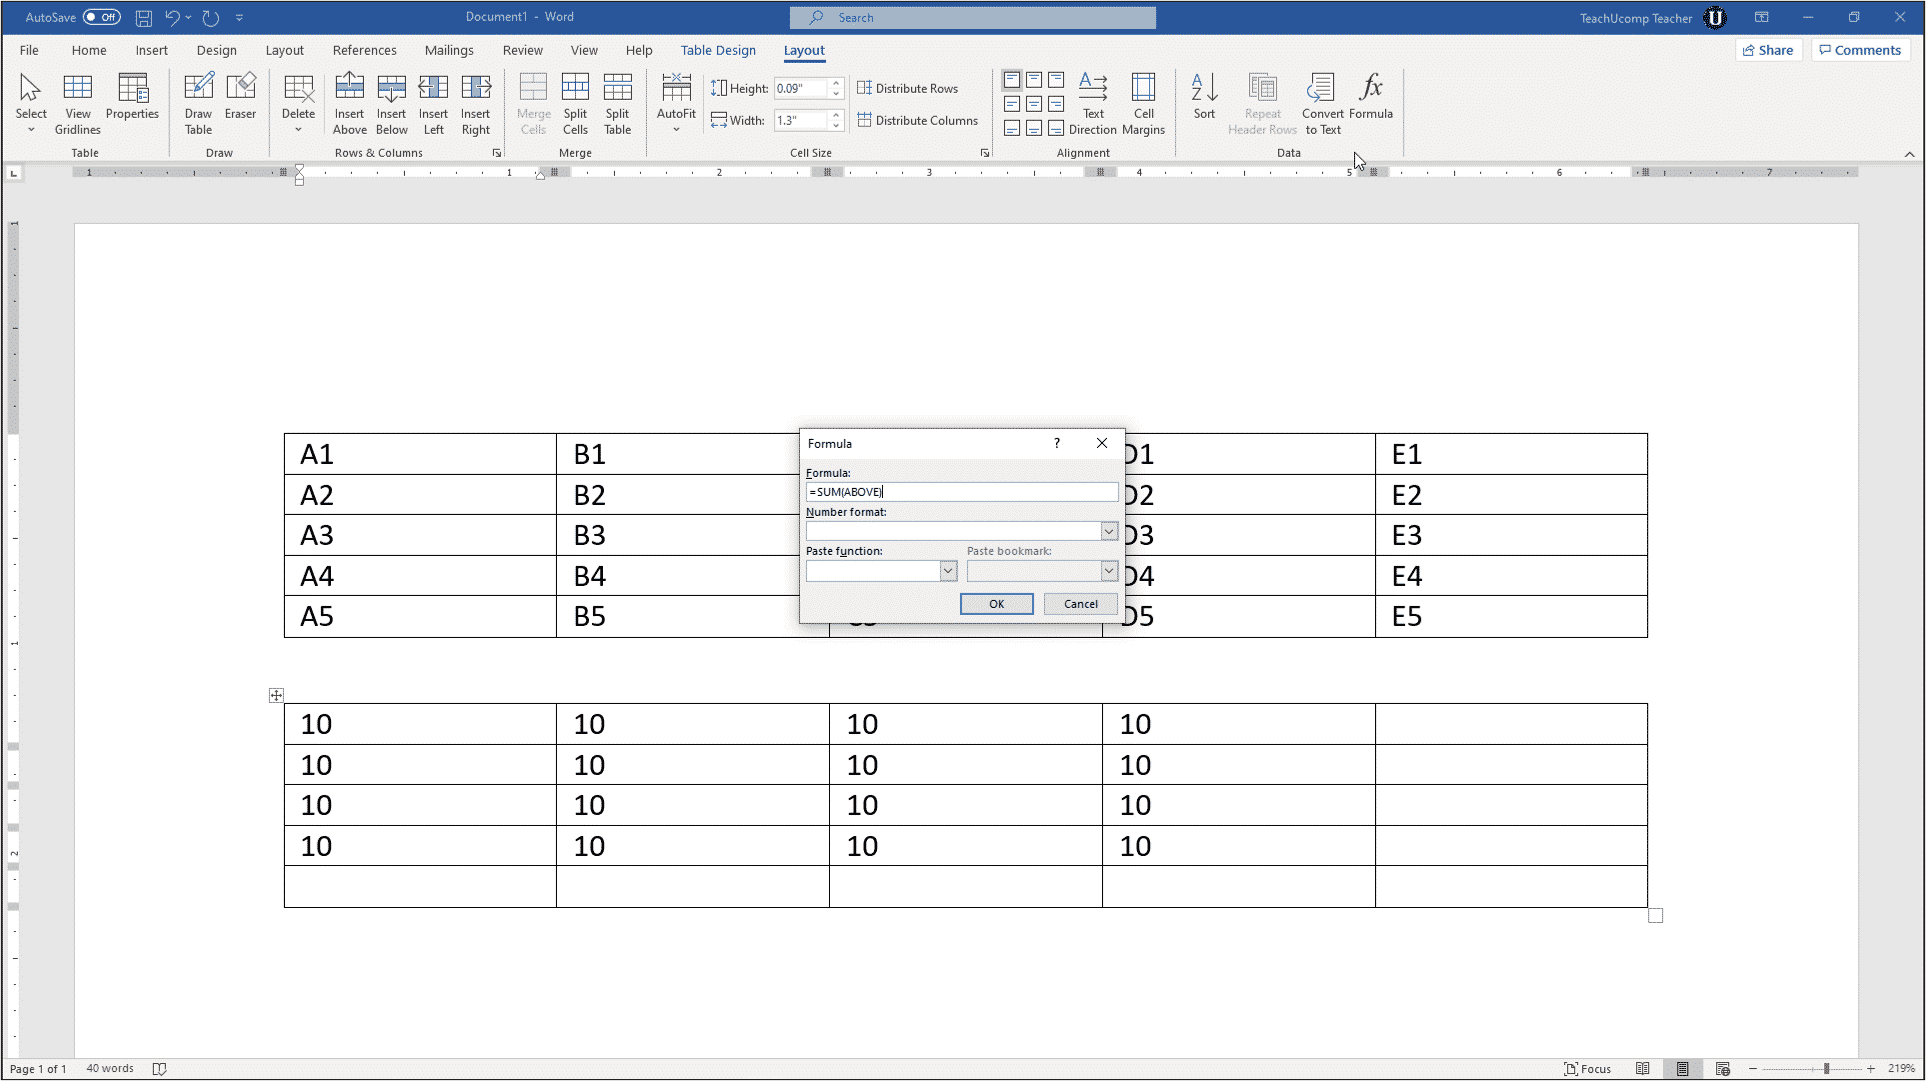 How to Put Excel Formulas in a Word Document